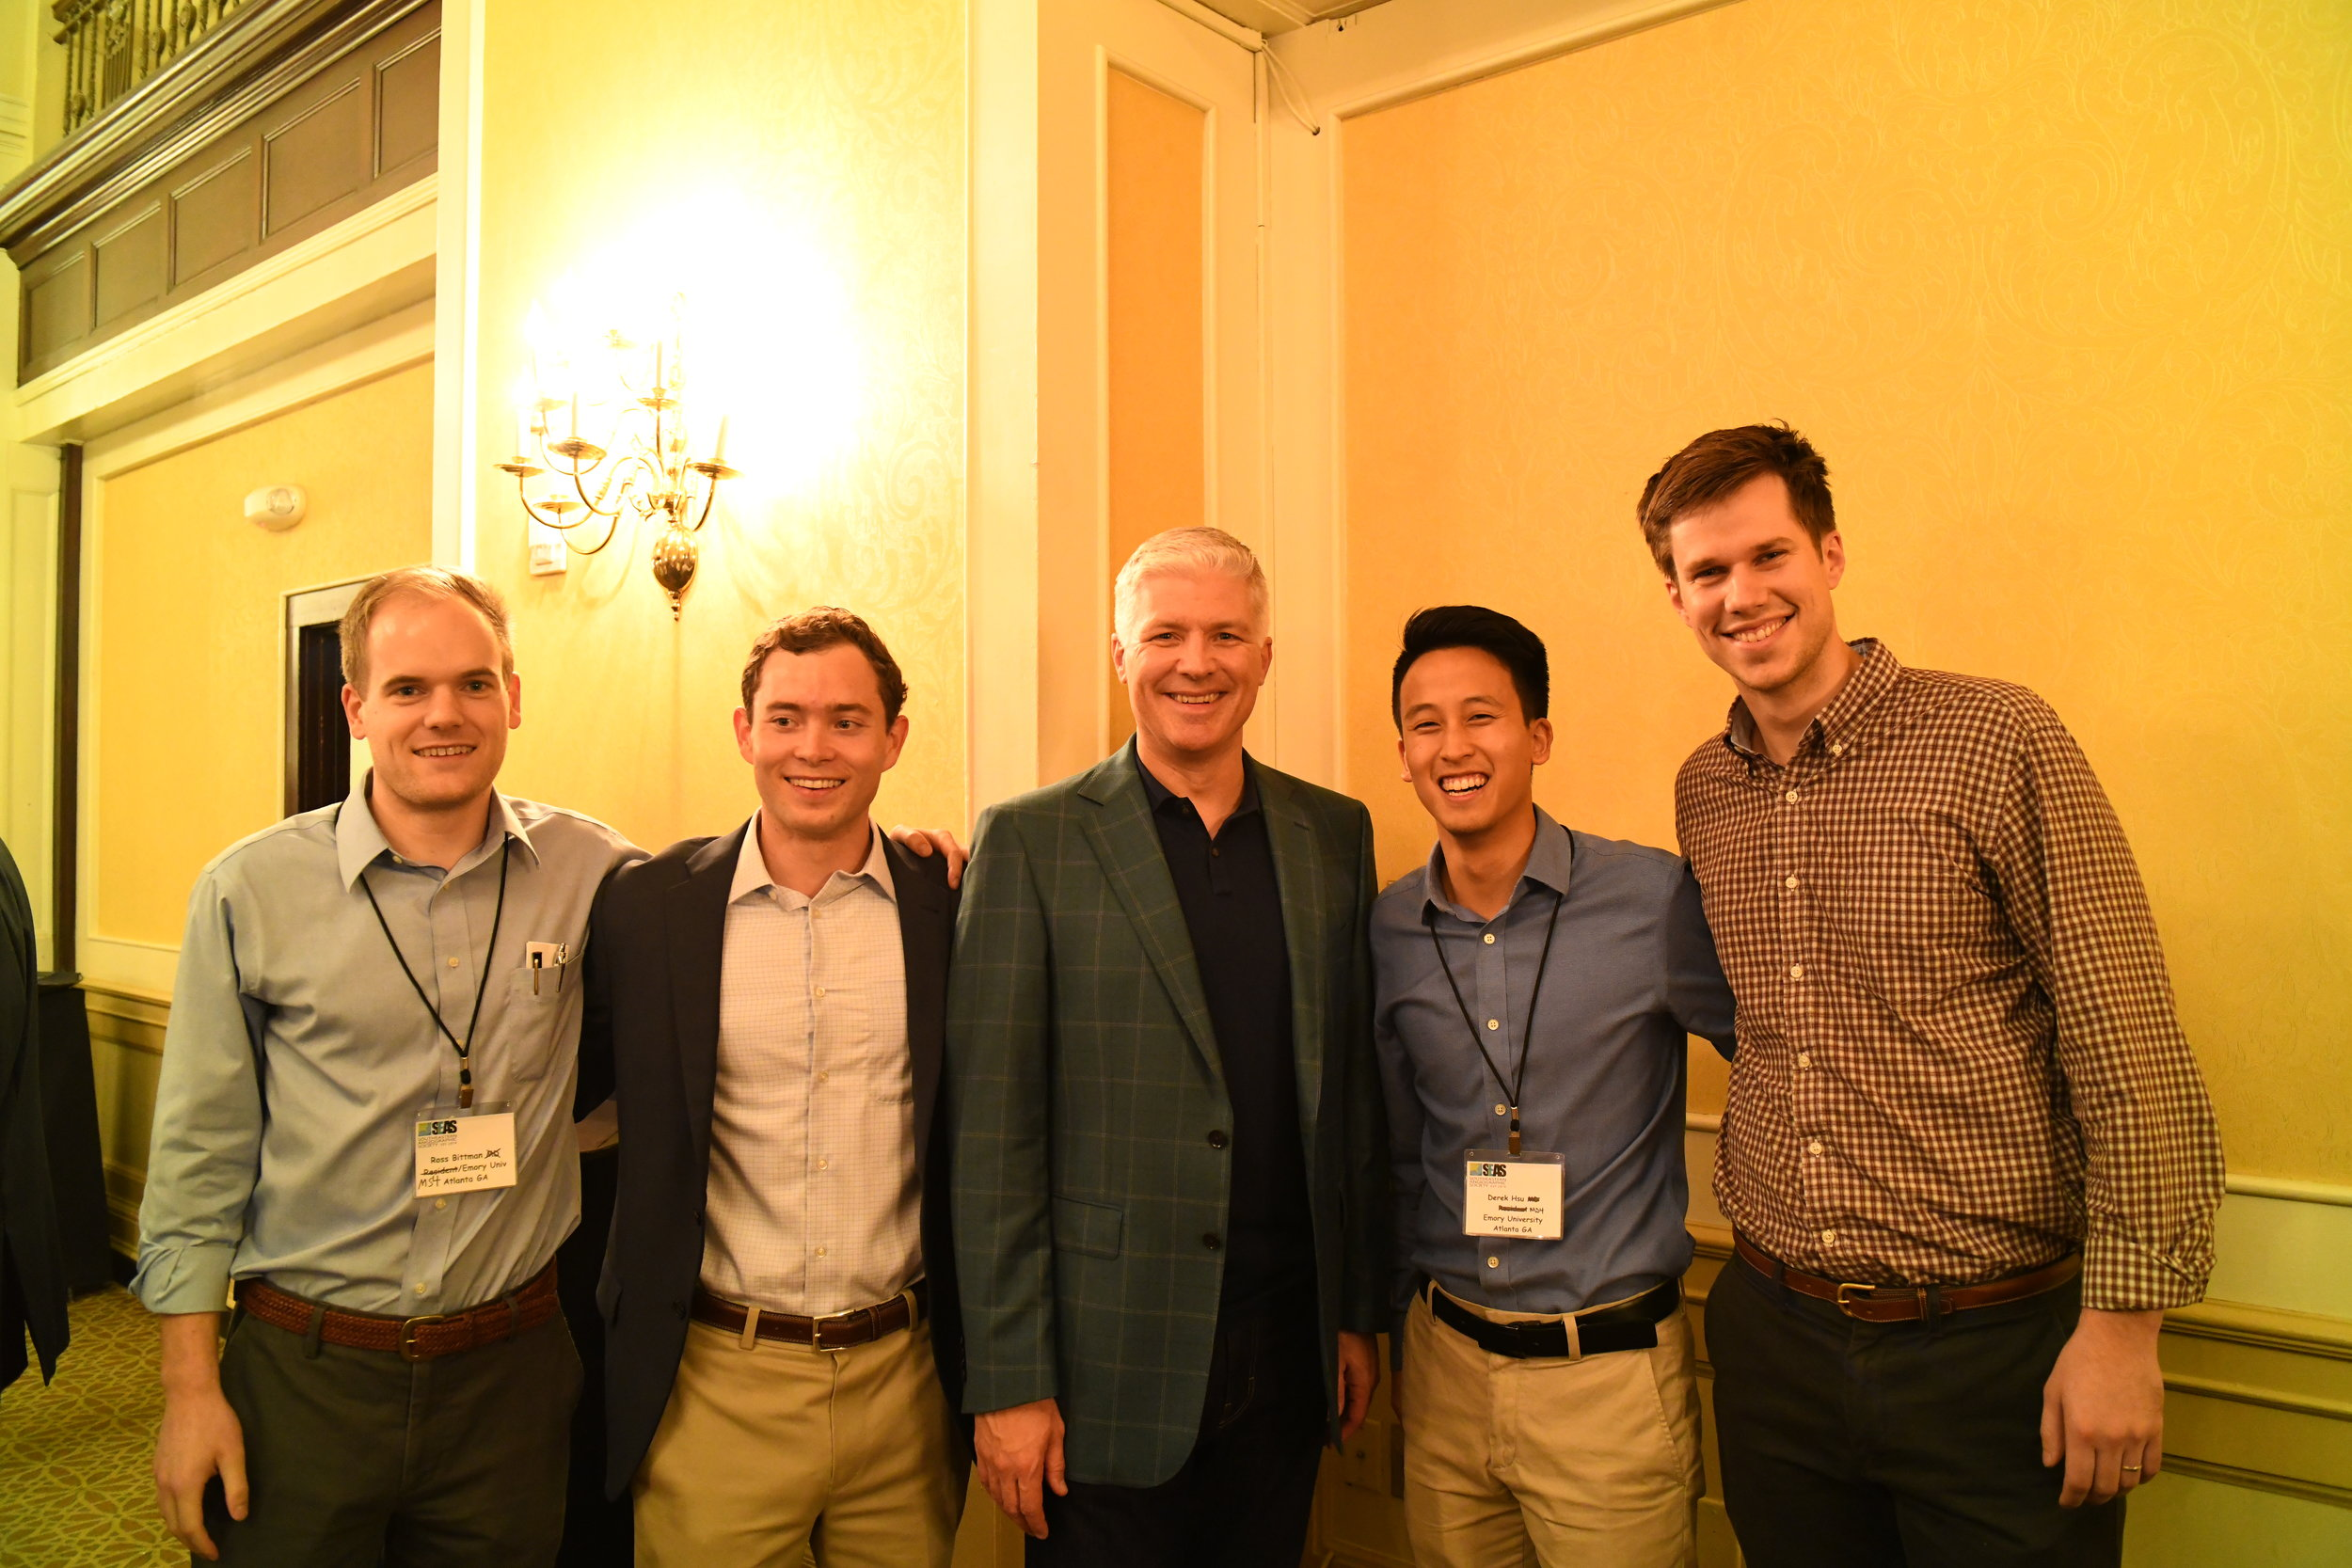 Dr. Mike Miller with medical students